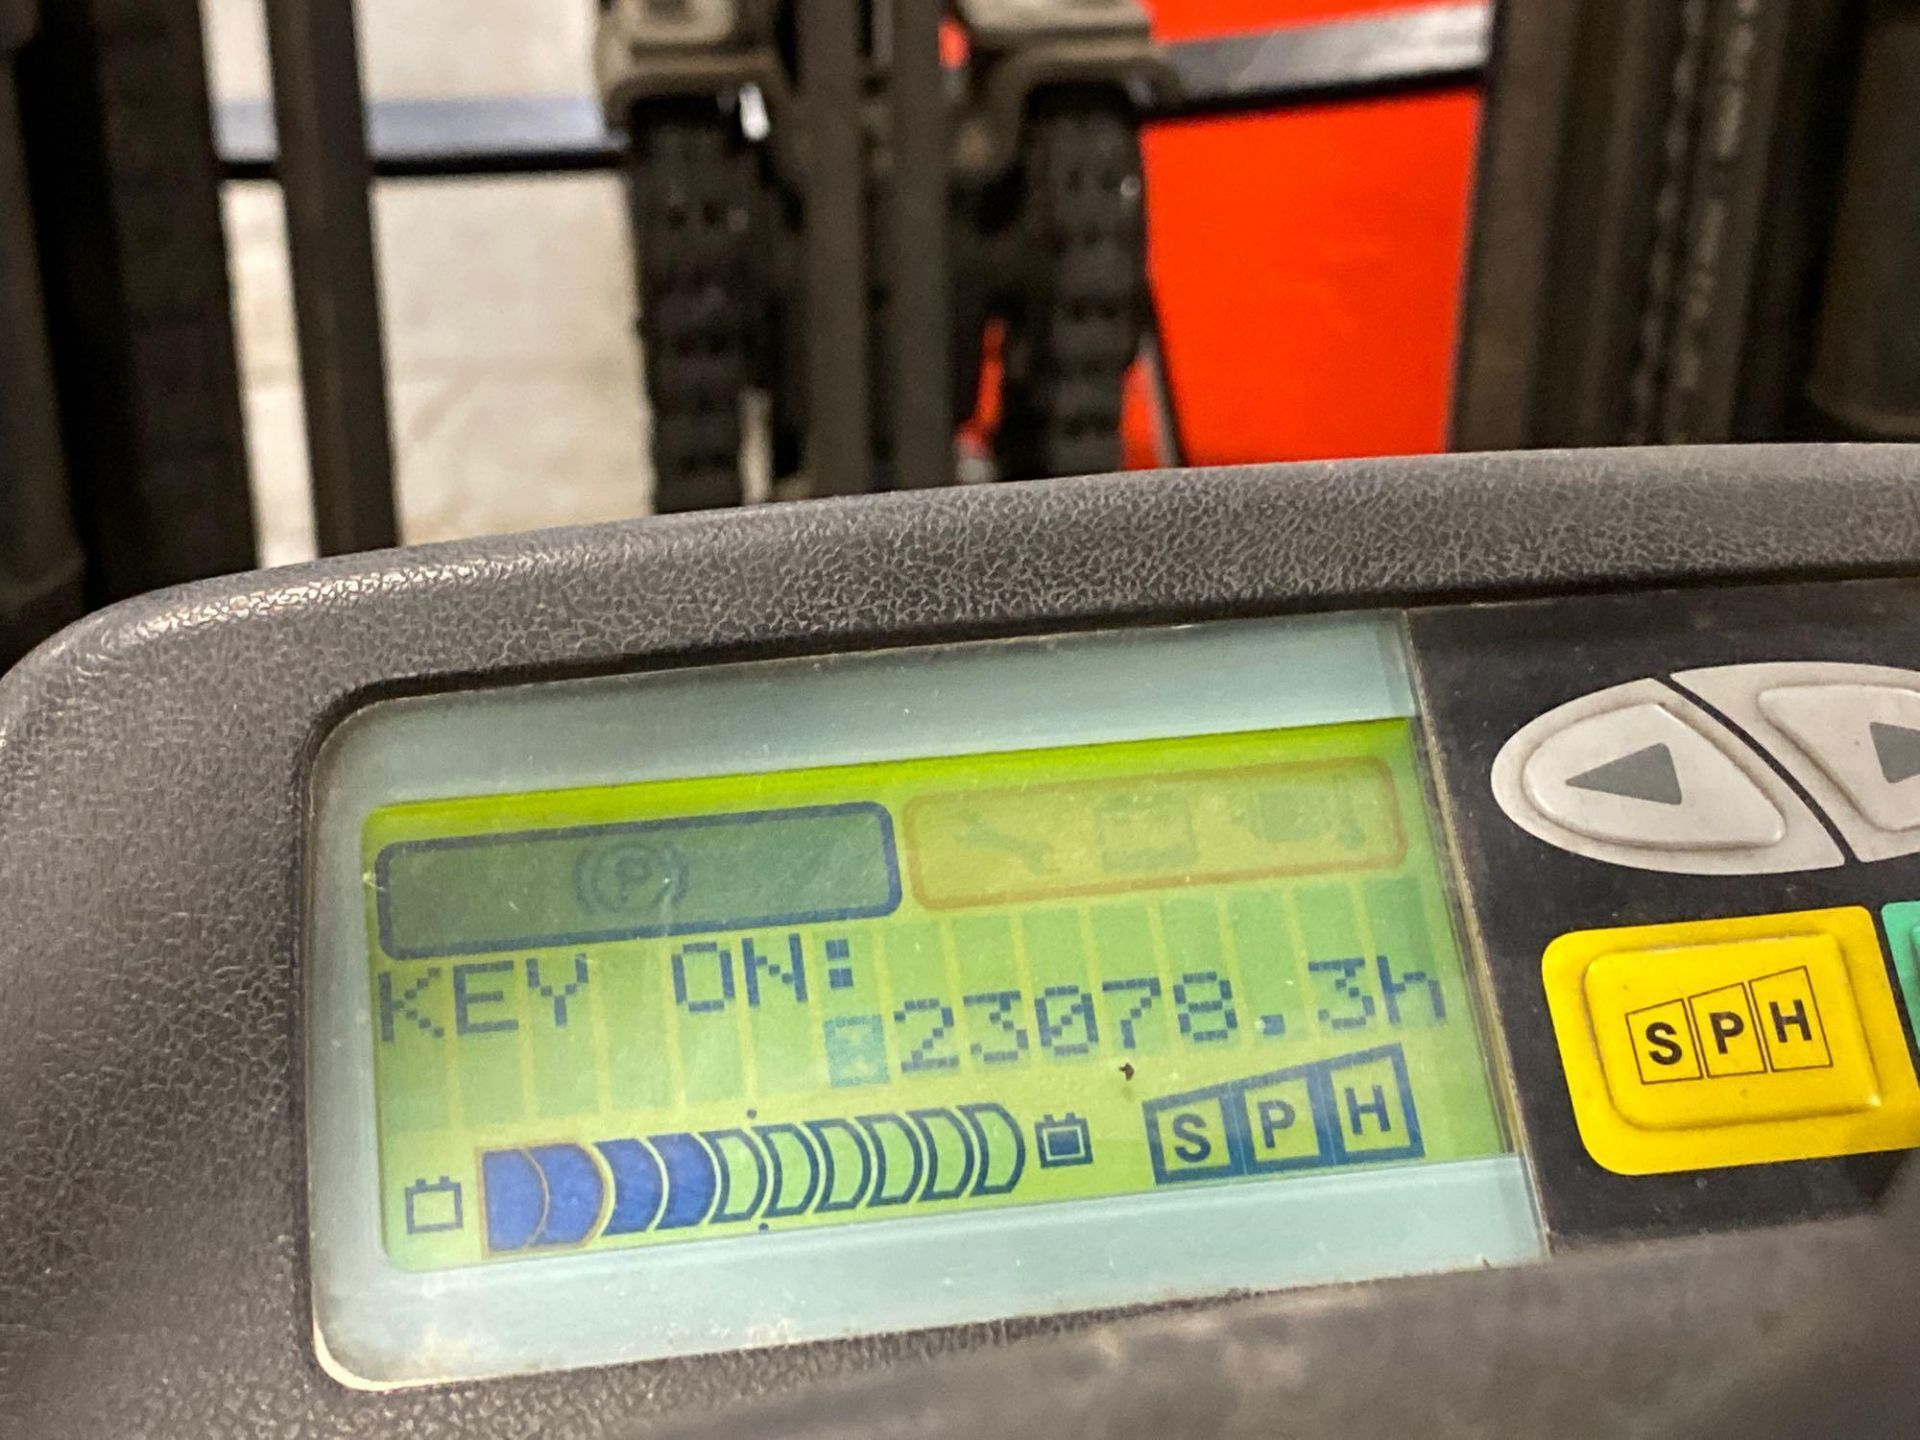 """TOYOTA 7FBCU25 ELECTRIC FORKLIFT, 5,000 LB CAPACITY, 170.5"""" HEIGHT CAPACITY - Image 18 of 20"""